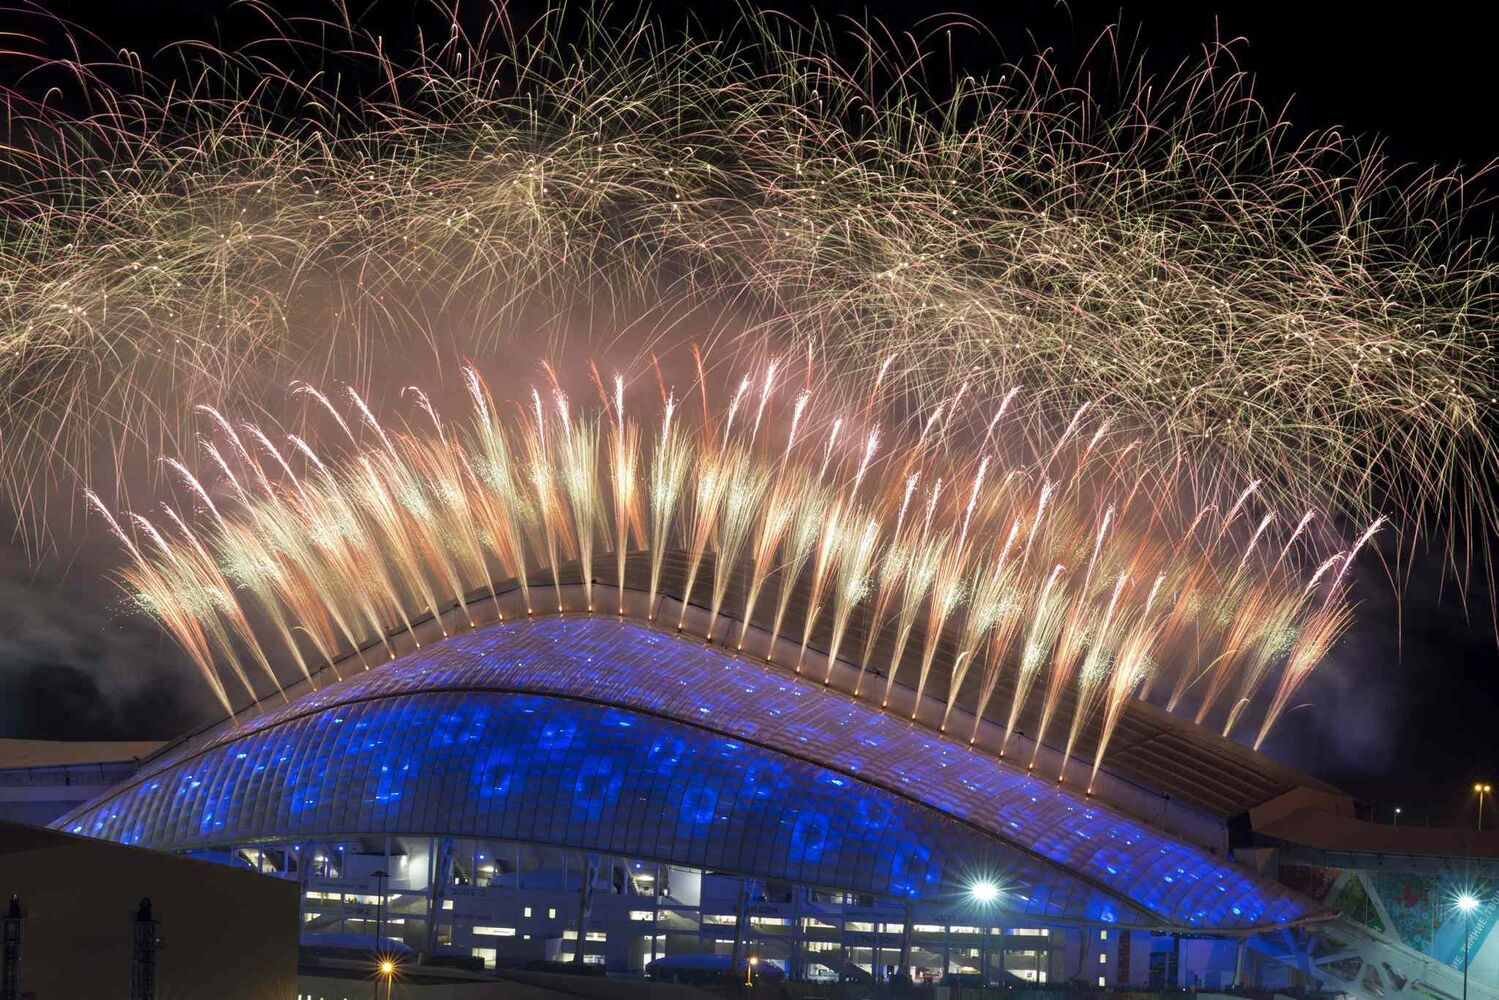 Fireworks explode over Fisht Olympic Stadium at the end of the opening ceremony for the 2014 Winter Olympics in Sochi, Russia, Friday, Feb. 7, 2014. (AP Photo/Pavel Golovkin)